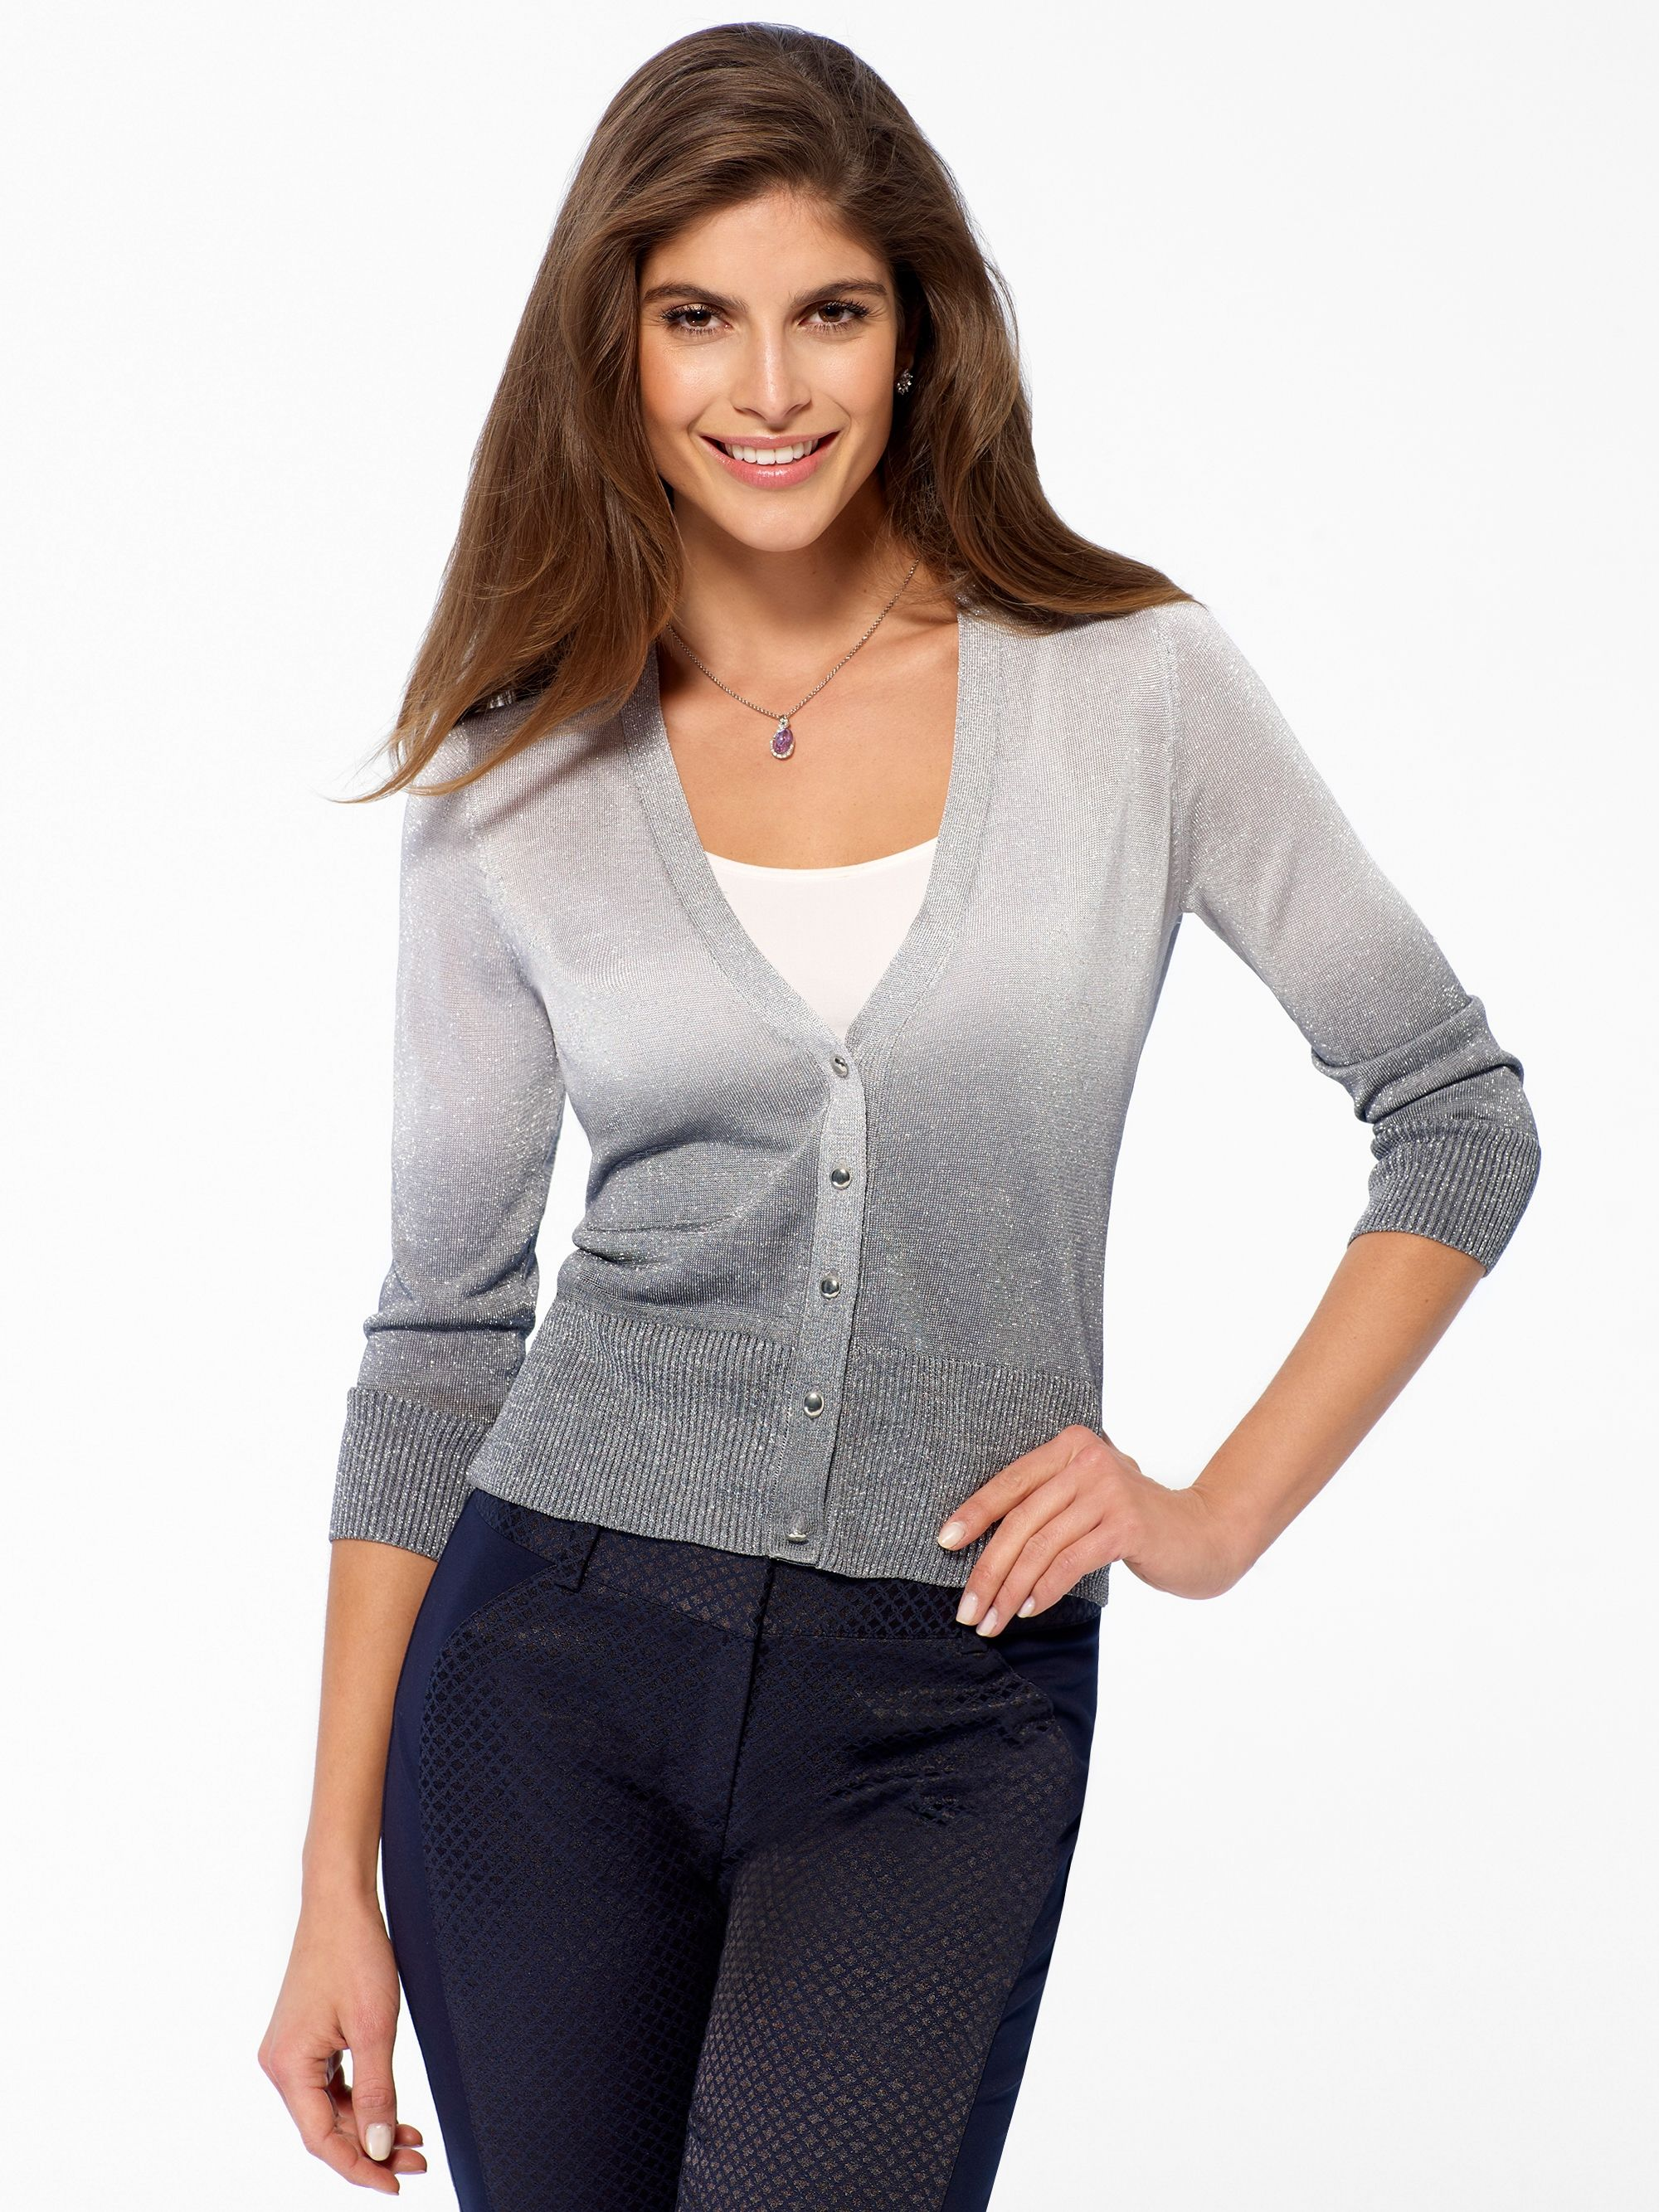 Sheer V-neck cardigan features light-to-dark ombre fade. Button ...